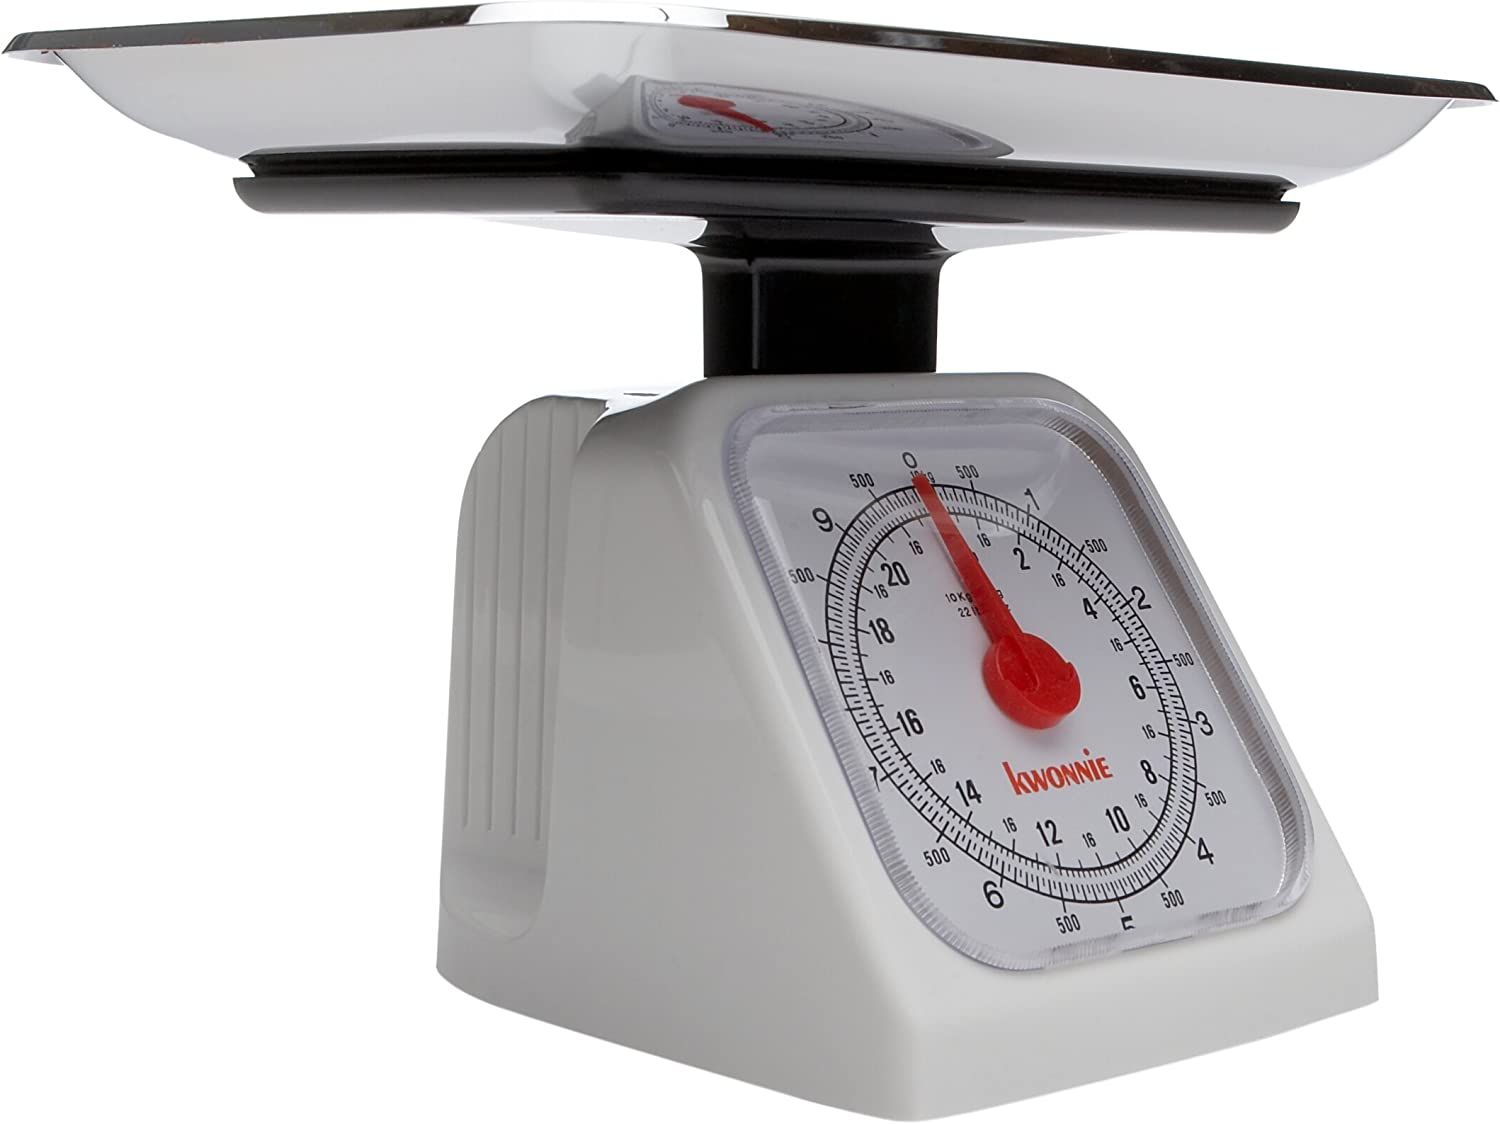 Norpro 22Lb Food Scale Removable Metal Tray, One Size, Shown